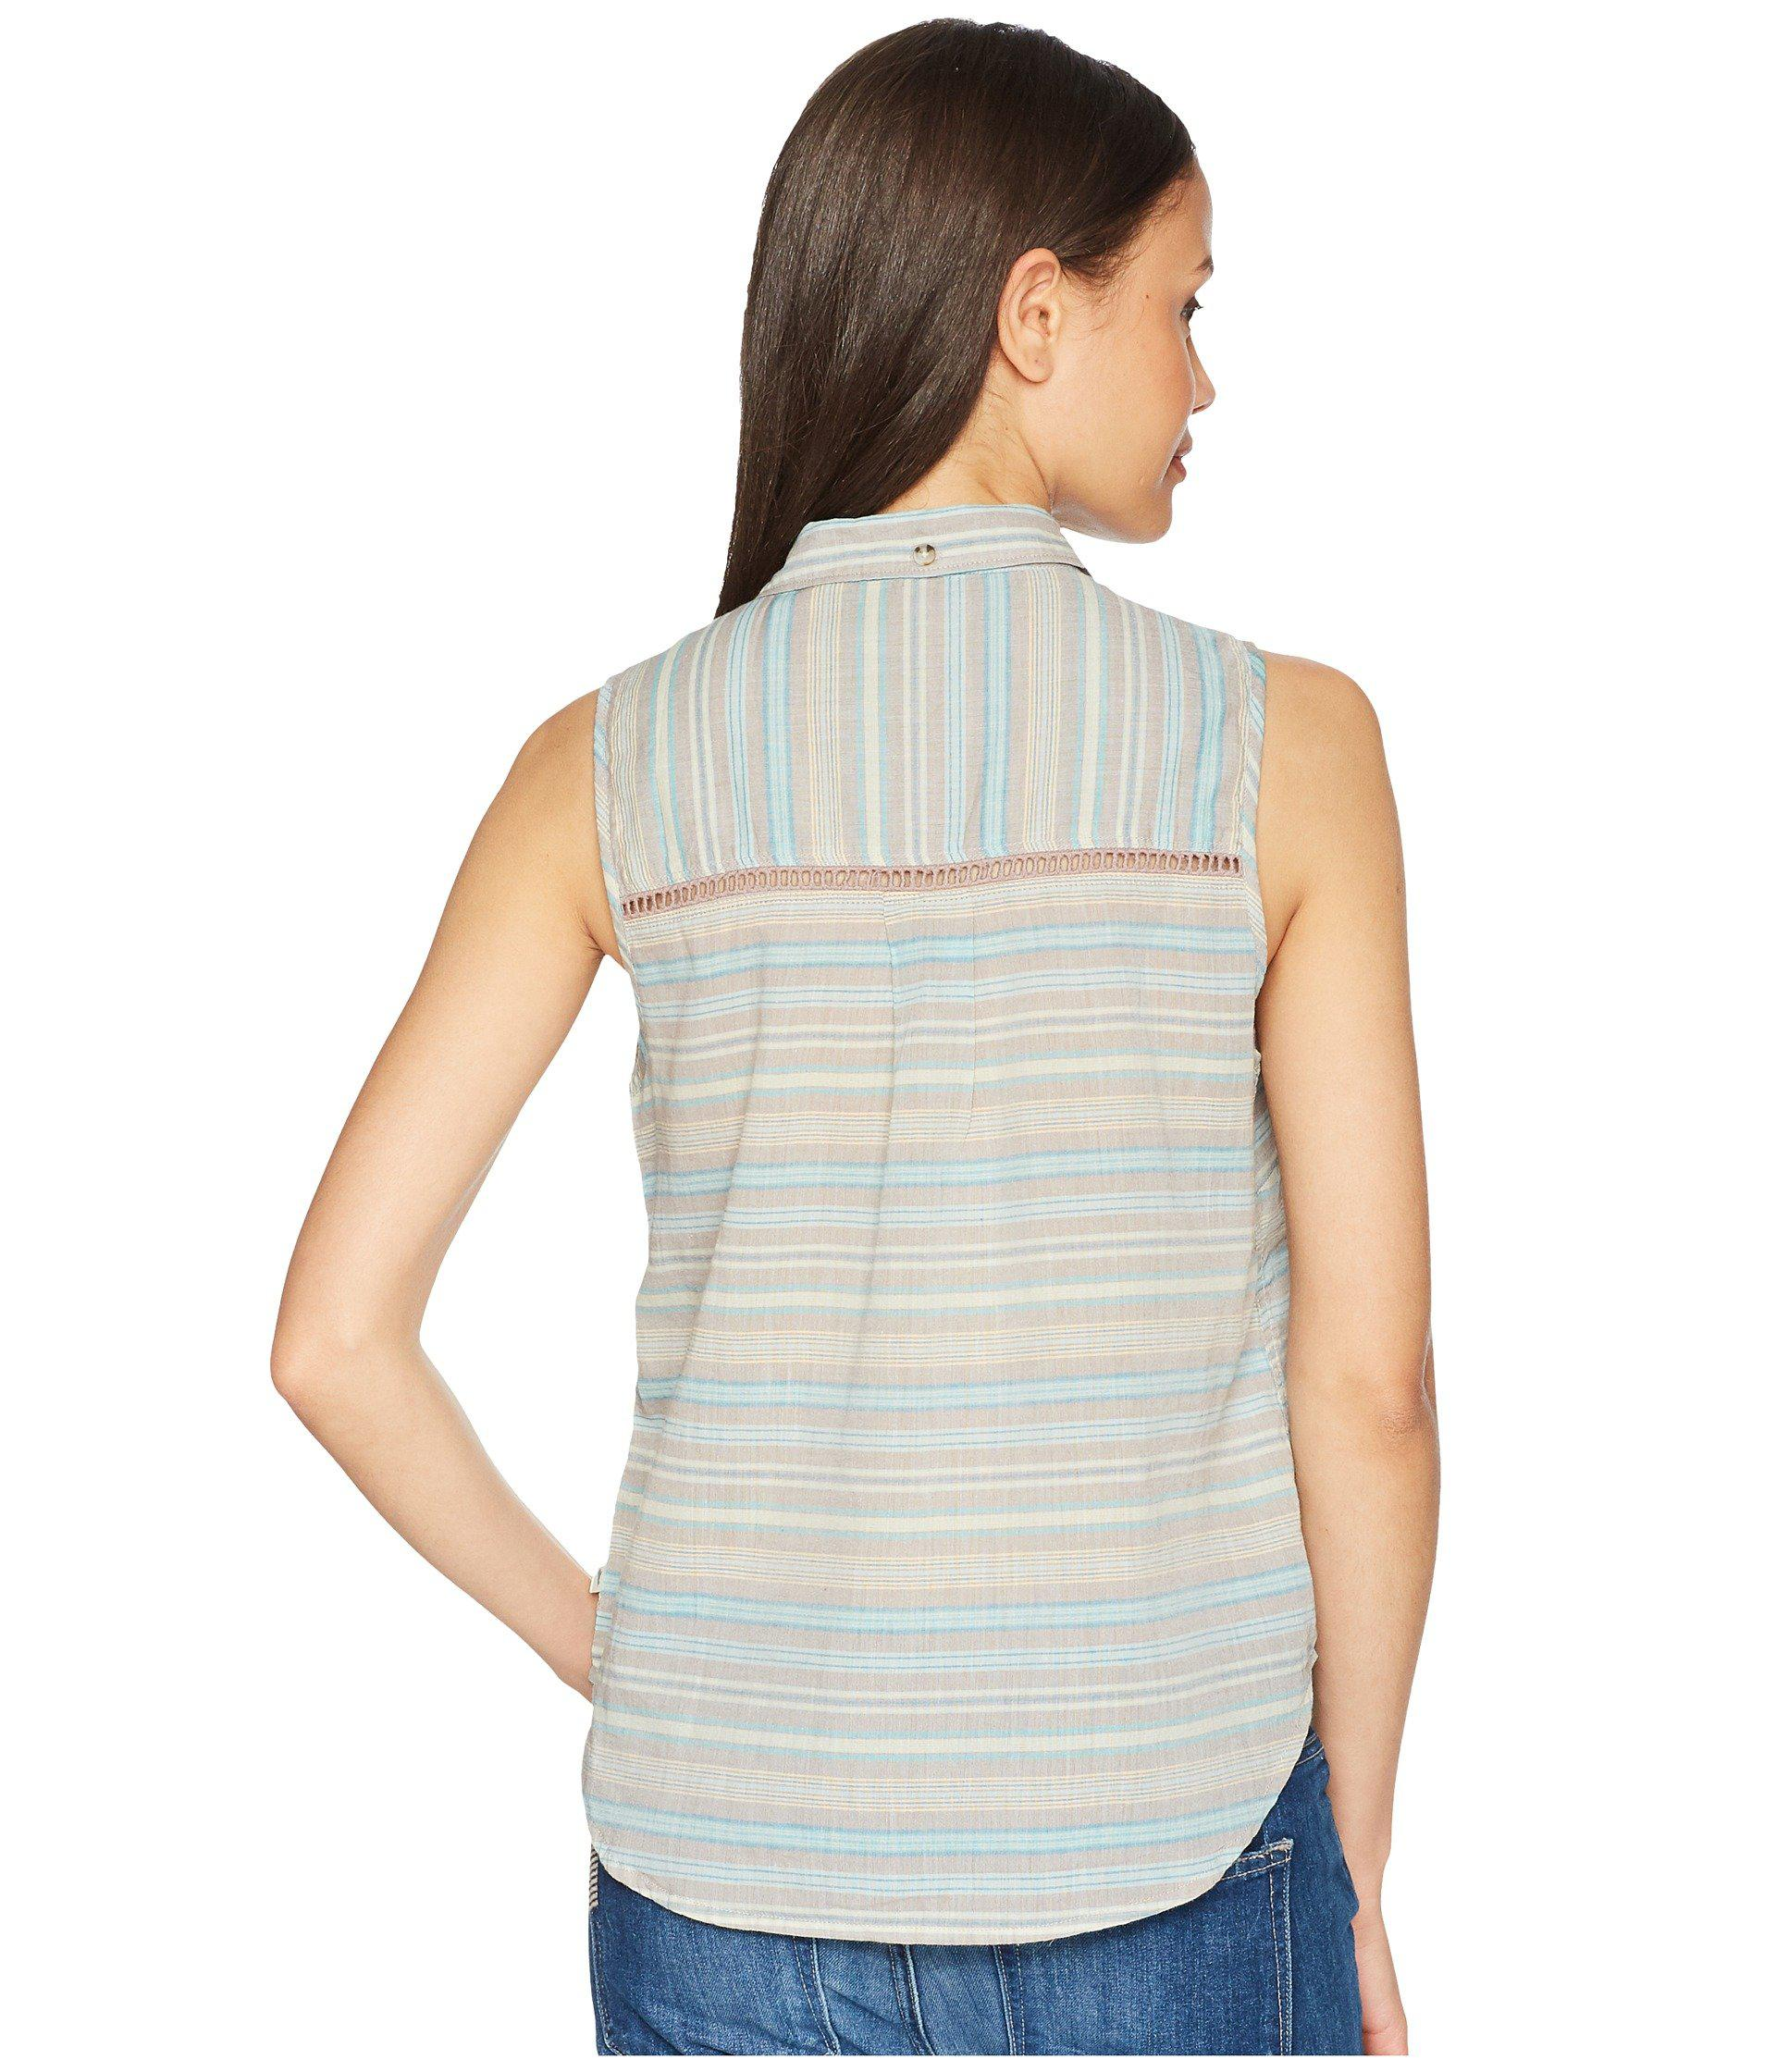 21a39278 Toad&Co - Multicolor Airbrush Sleeveless Deco Shirt - Lyst. View fullscreen